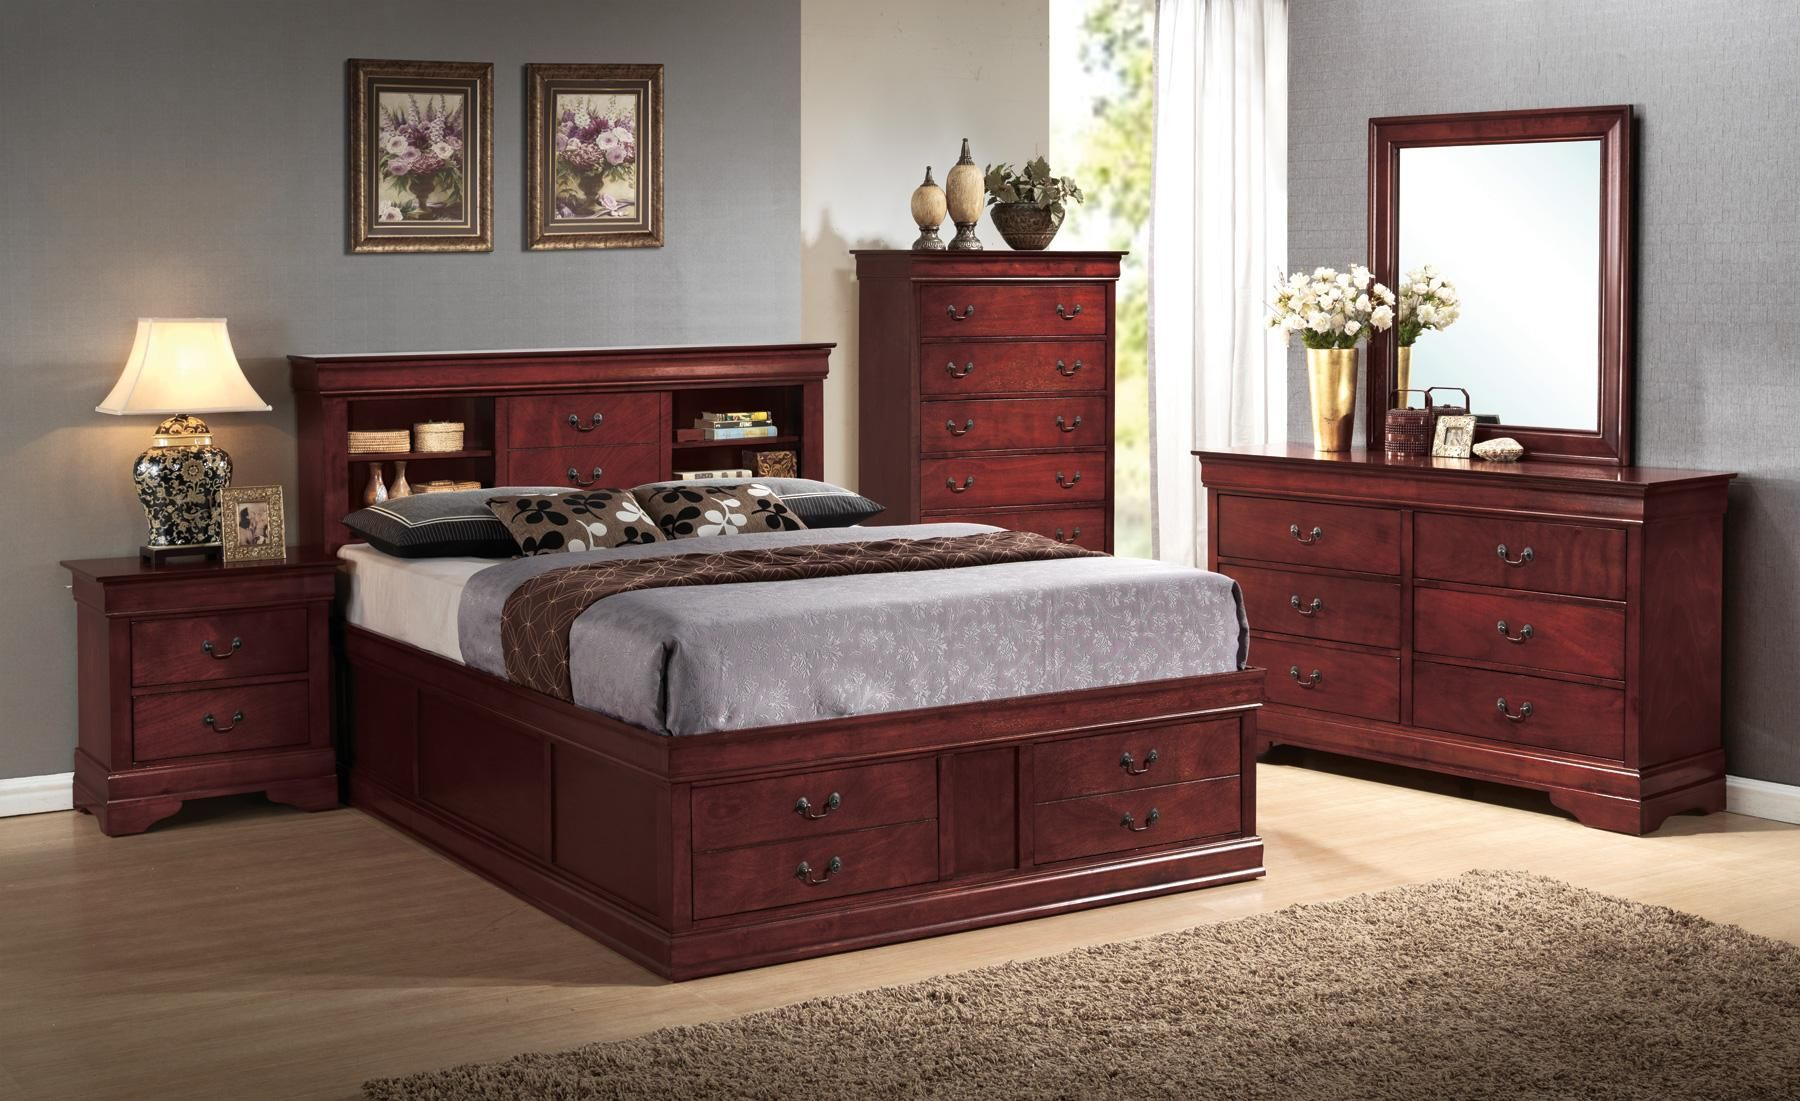 louis philippe cherry queen 5pc storage bedroom set bedroom group dallas tx furniture king size